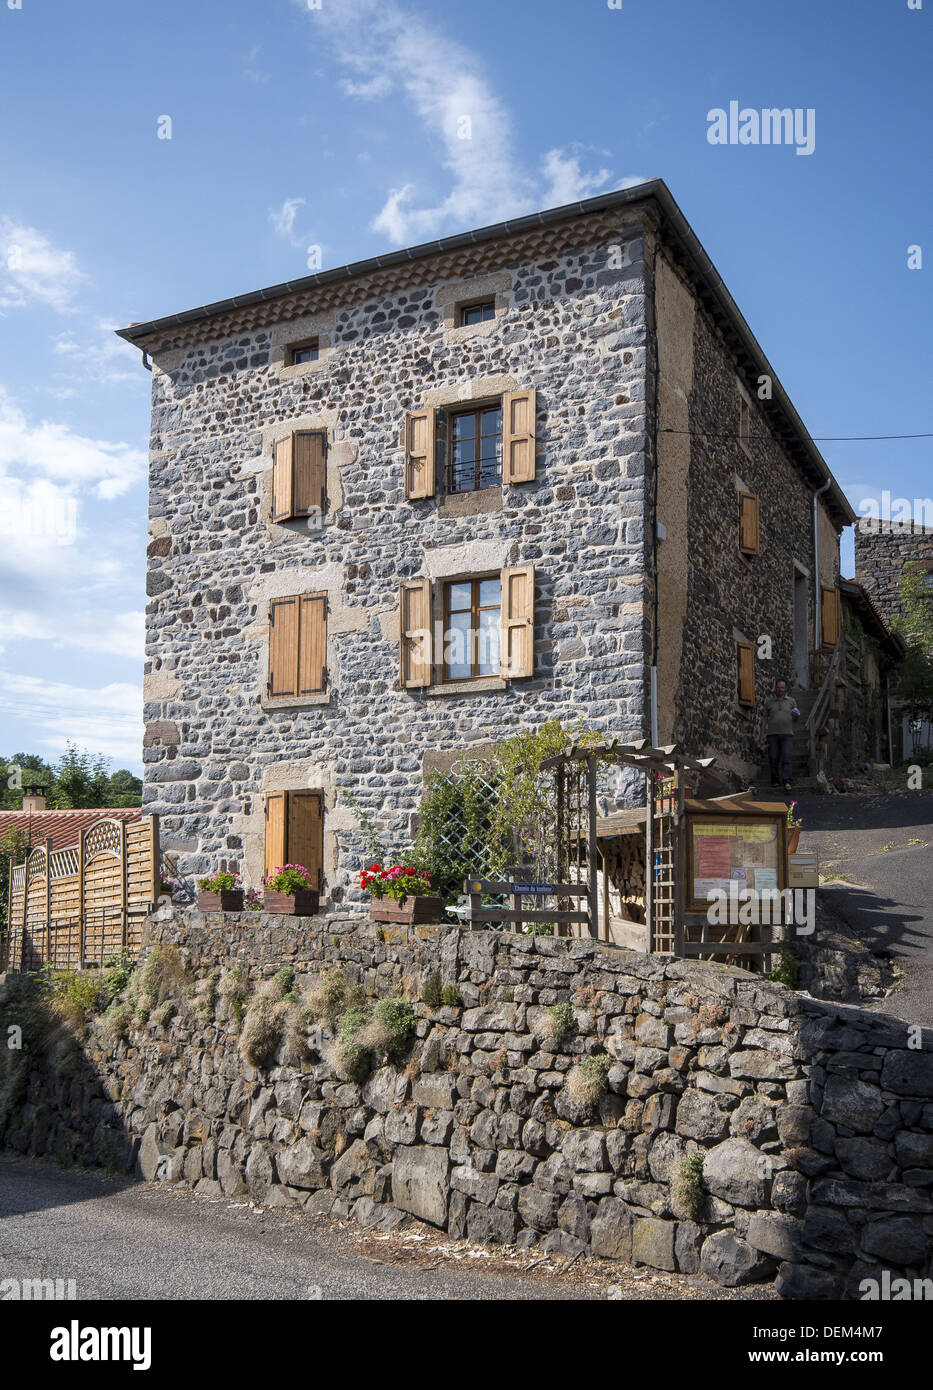 Gite hostel in St-Privat-d'Allier on the GR65 route, The way of St James, France - Stock Image